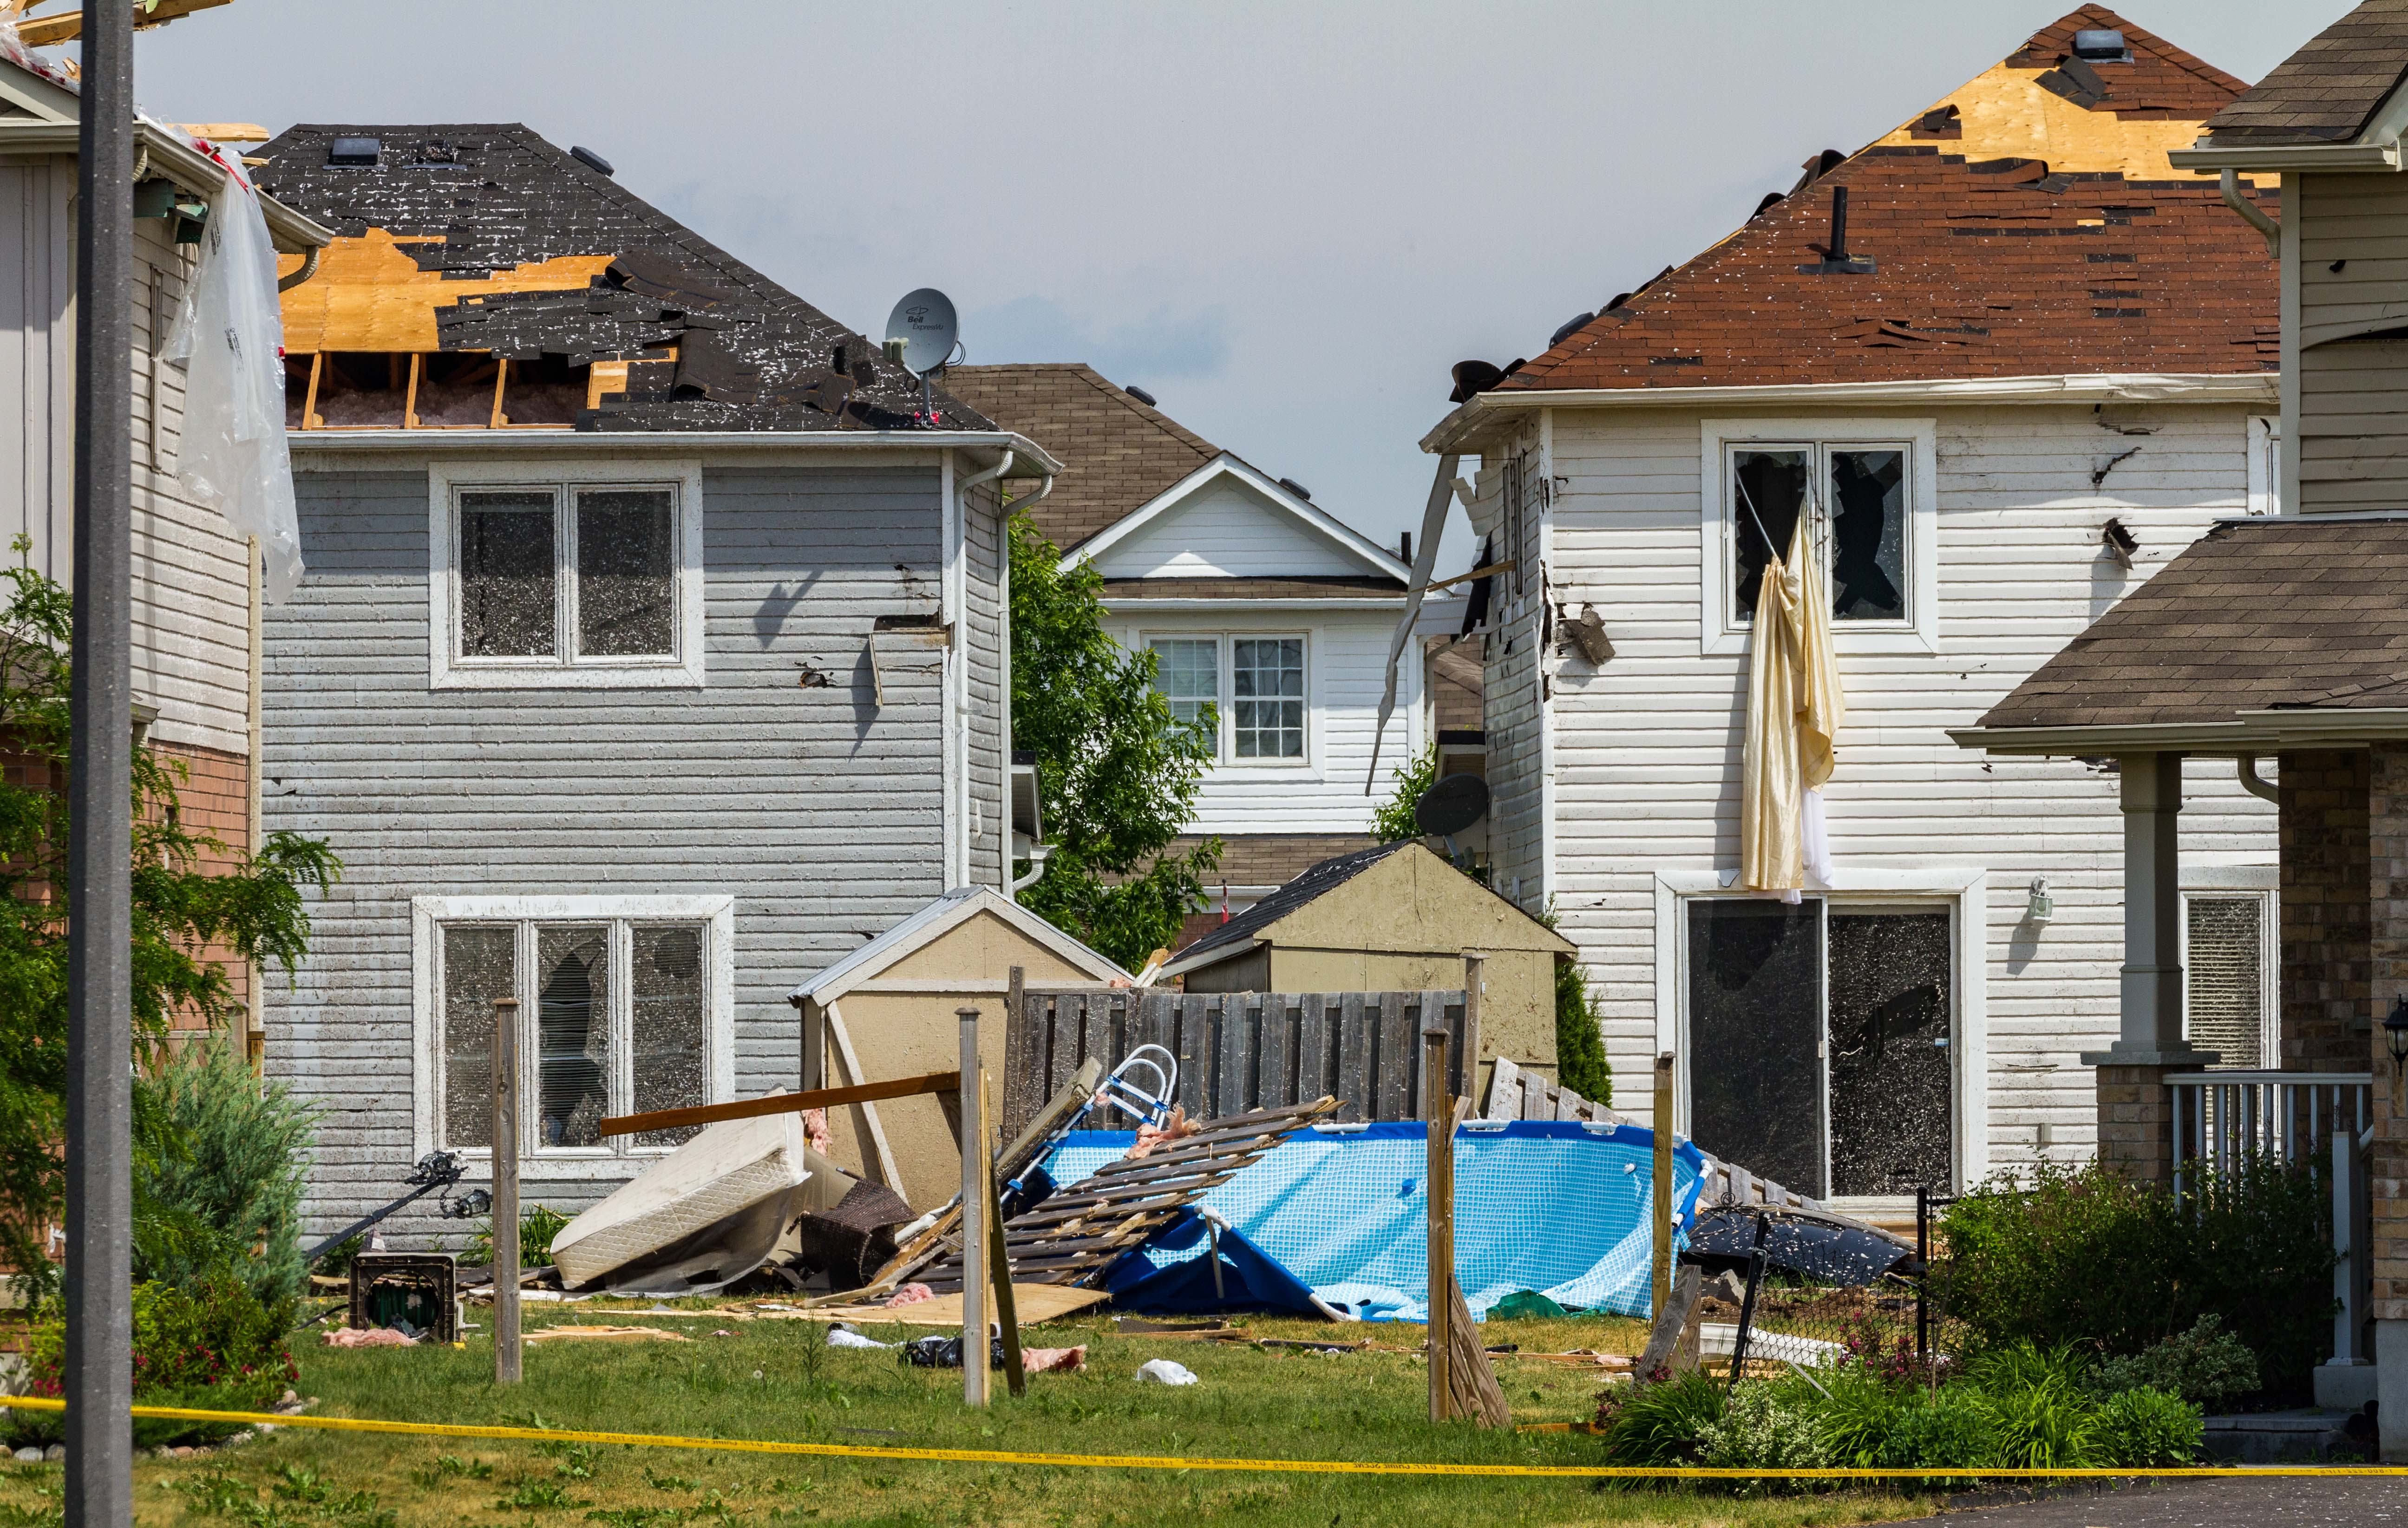 Roof and Yard Damage